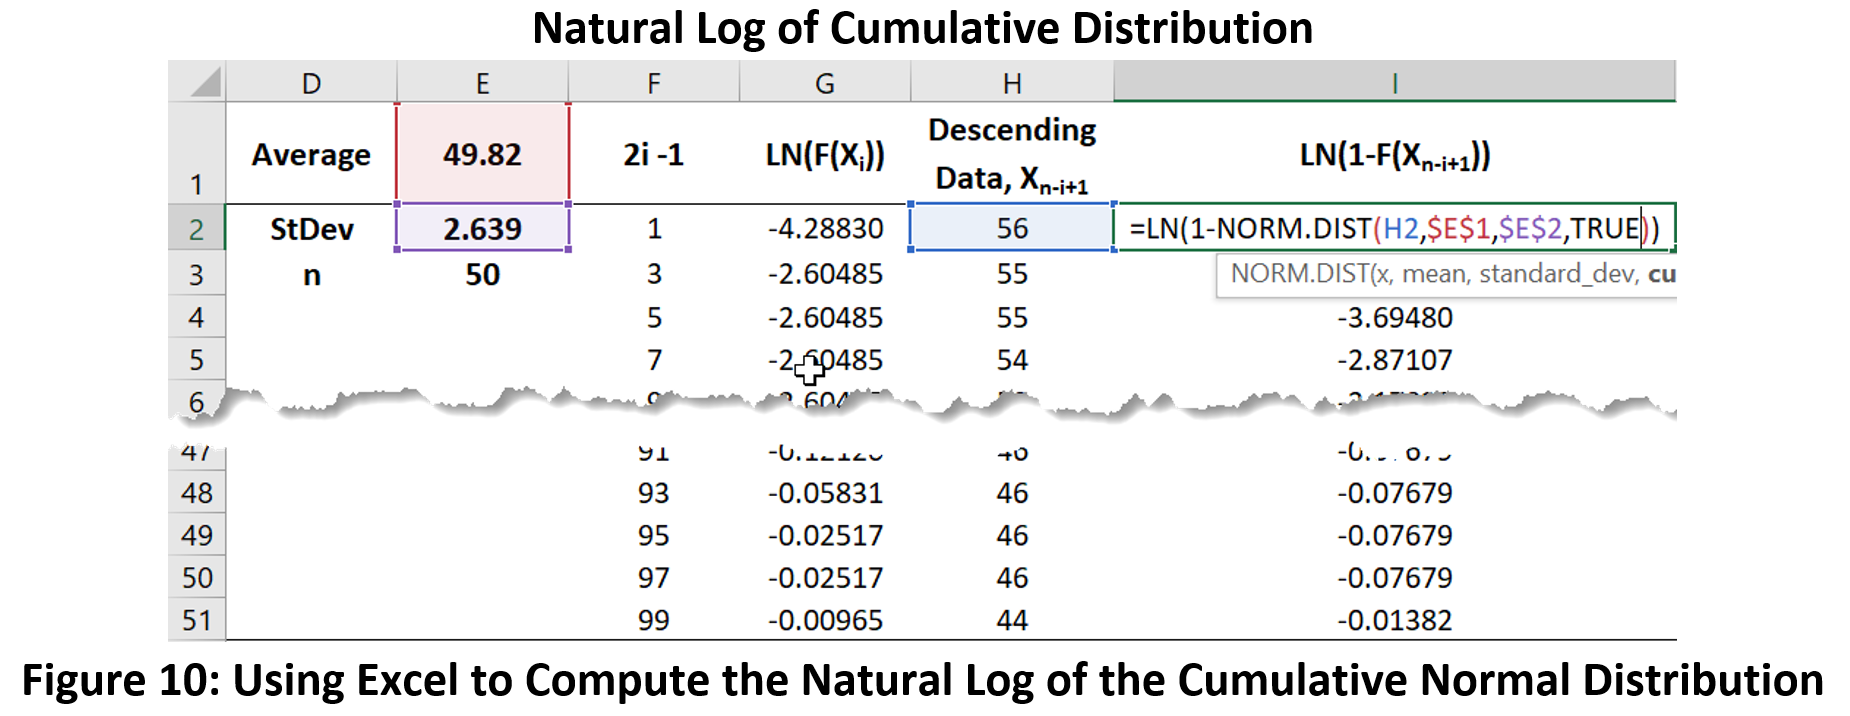 Figure 10: Natural Log of Cumulative Normal Distribution